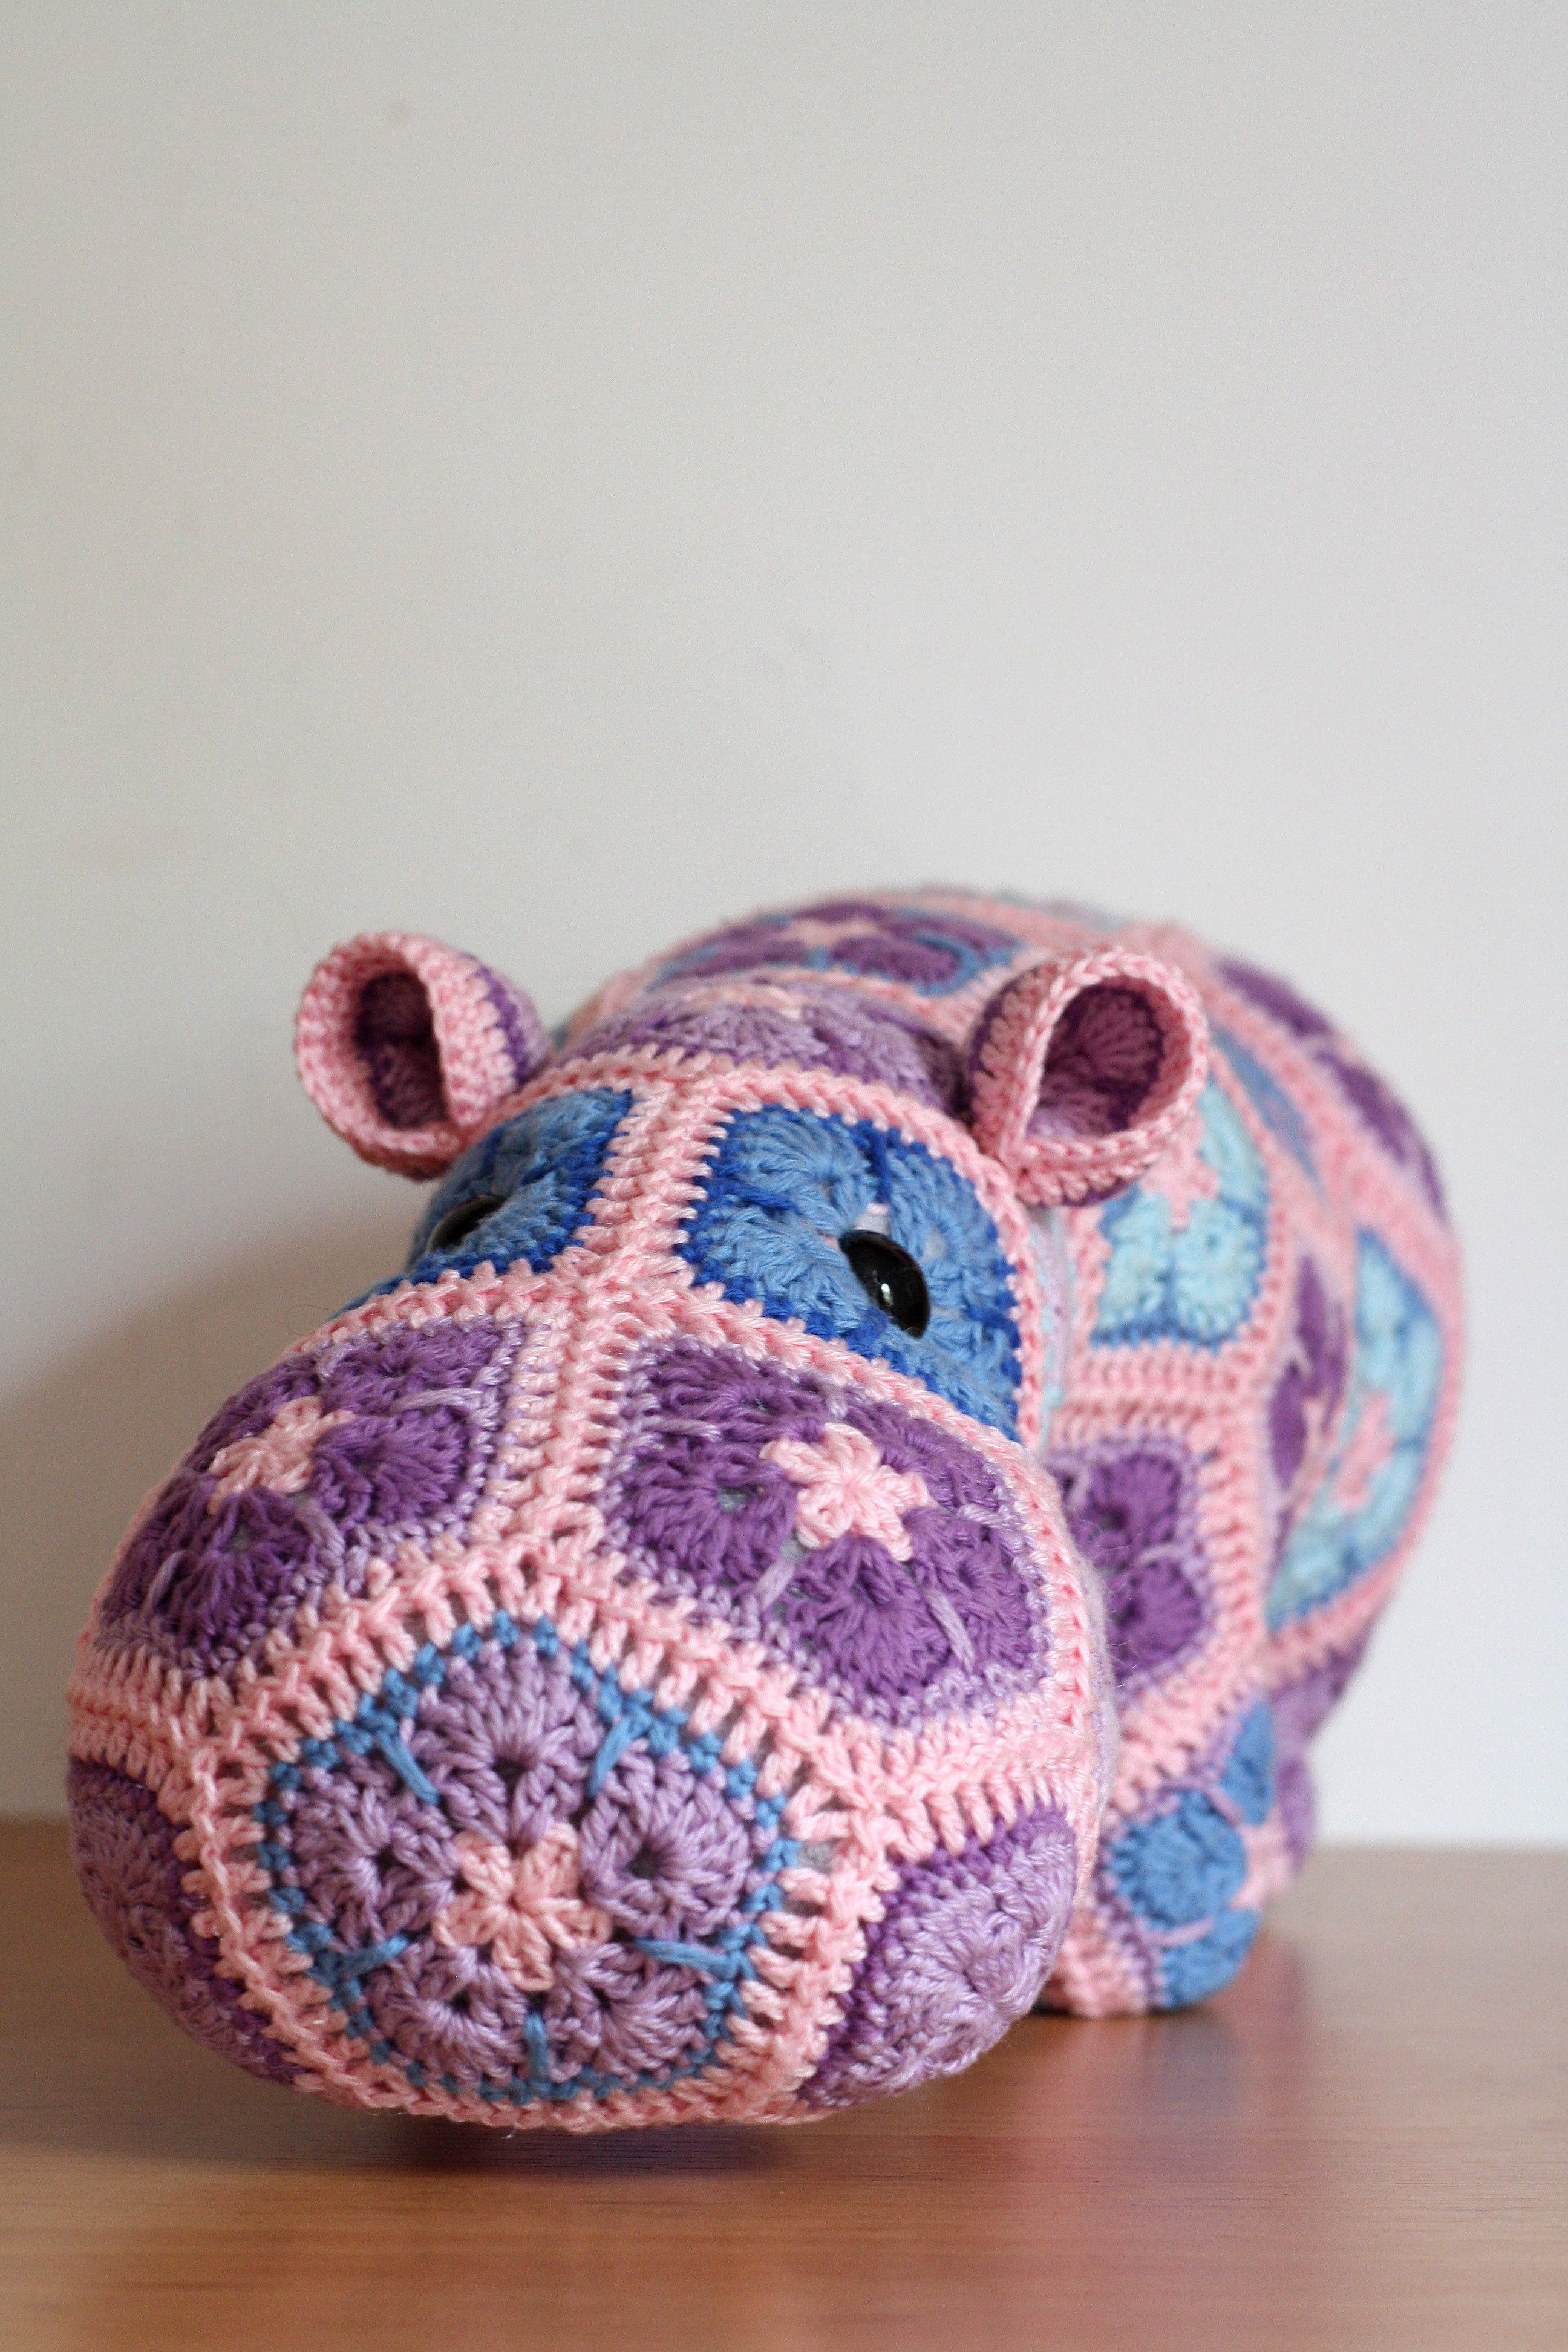 Happypotamus The Happy Hippo African Flower Crochet Toy Pattern By